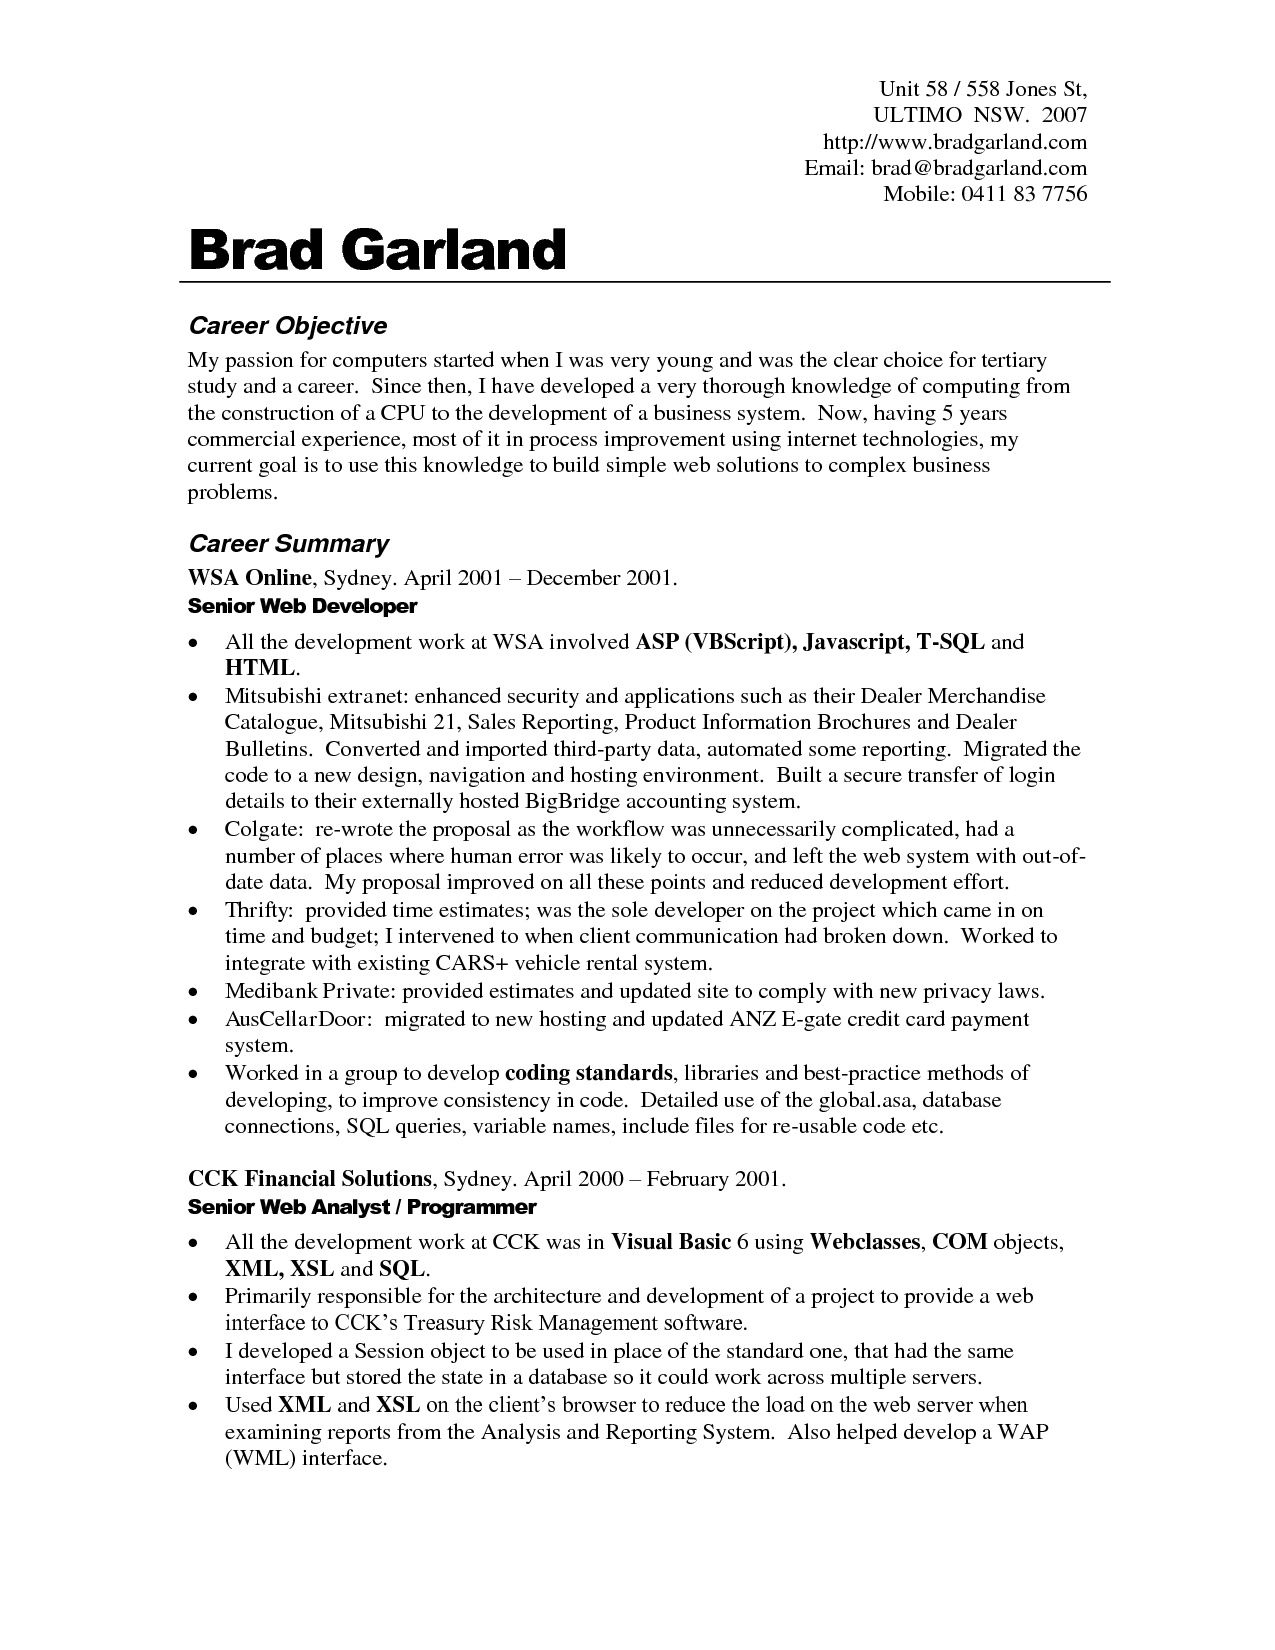 Superb Career Examples  Objective Examples For Resumes